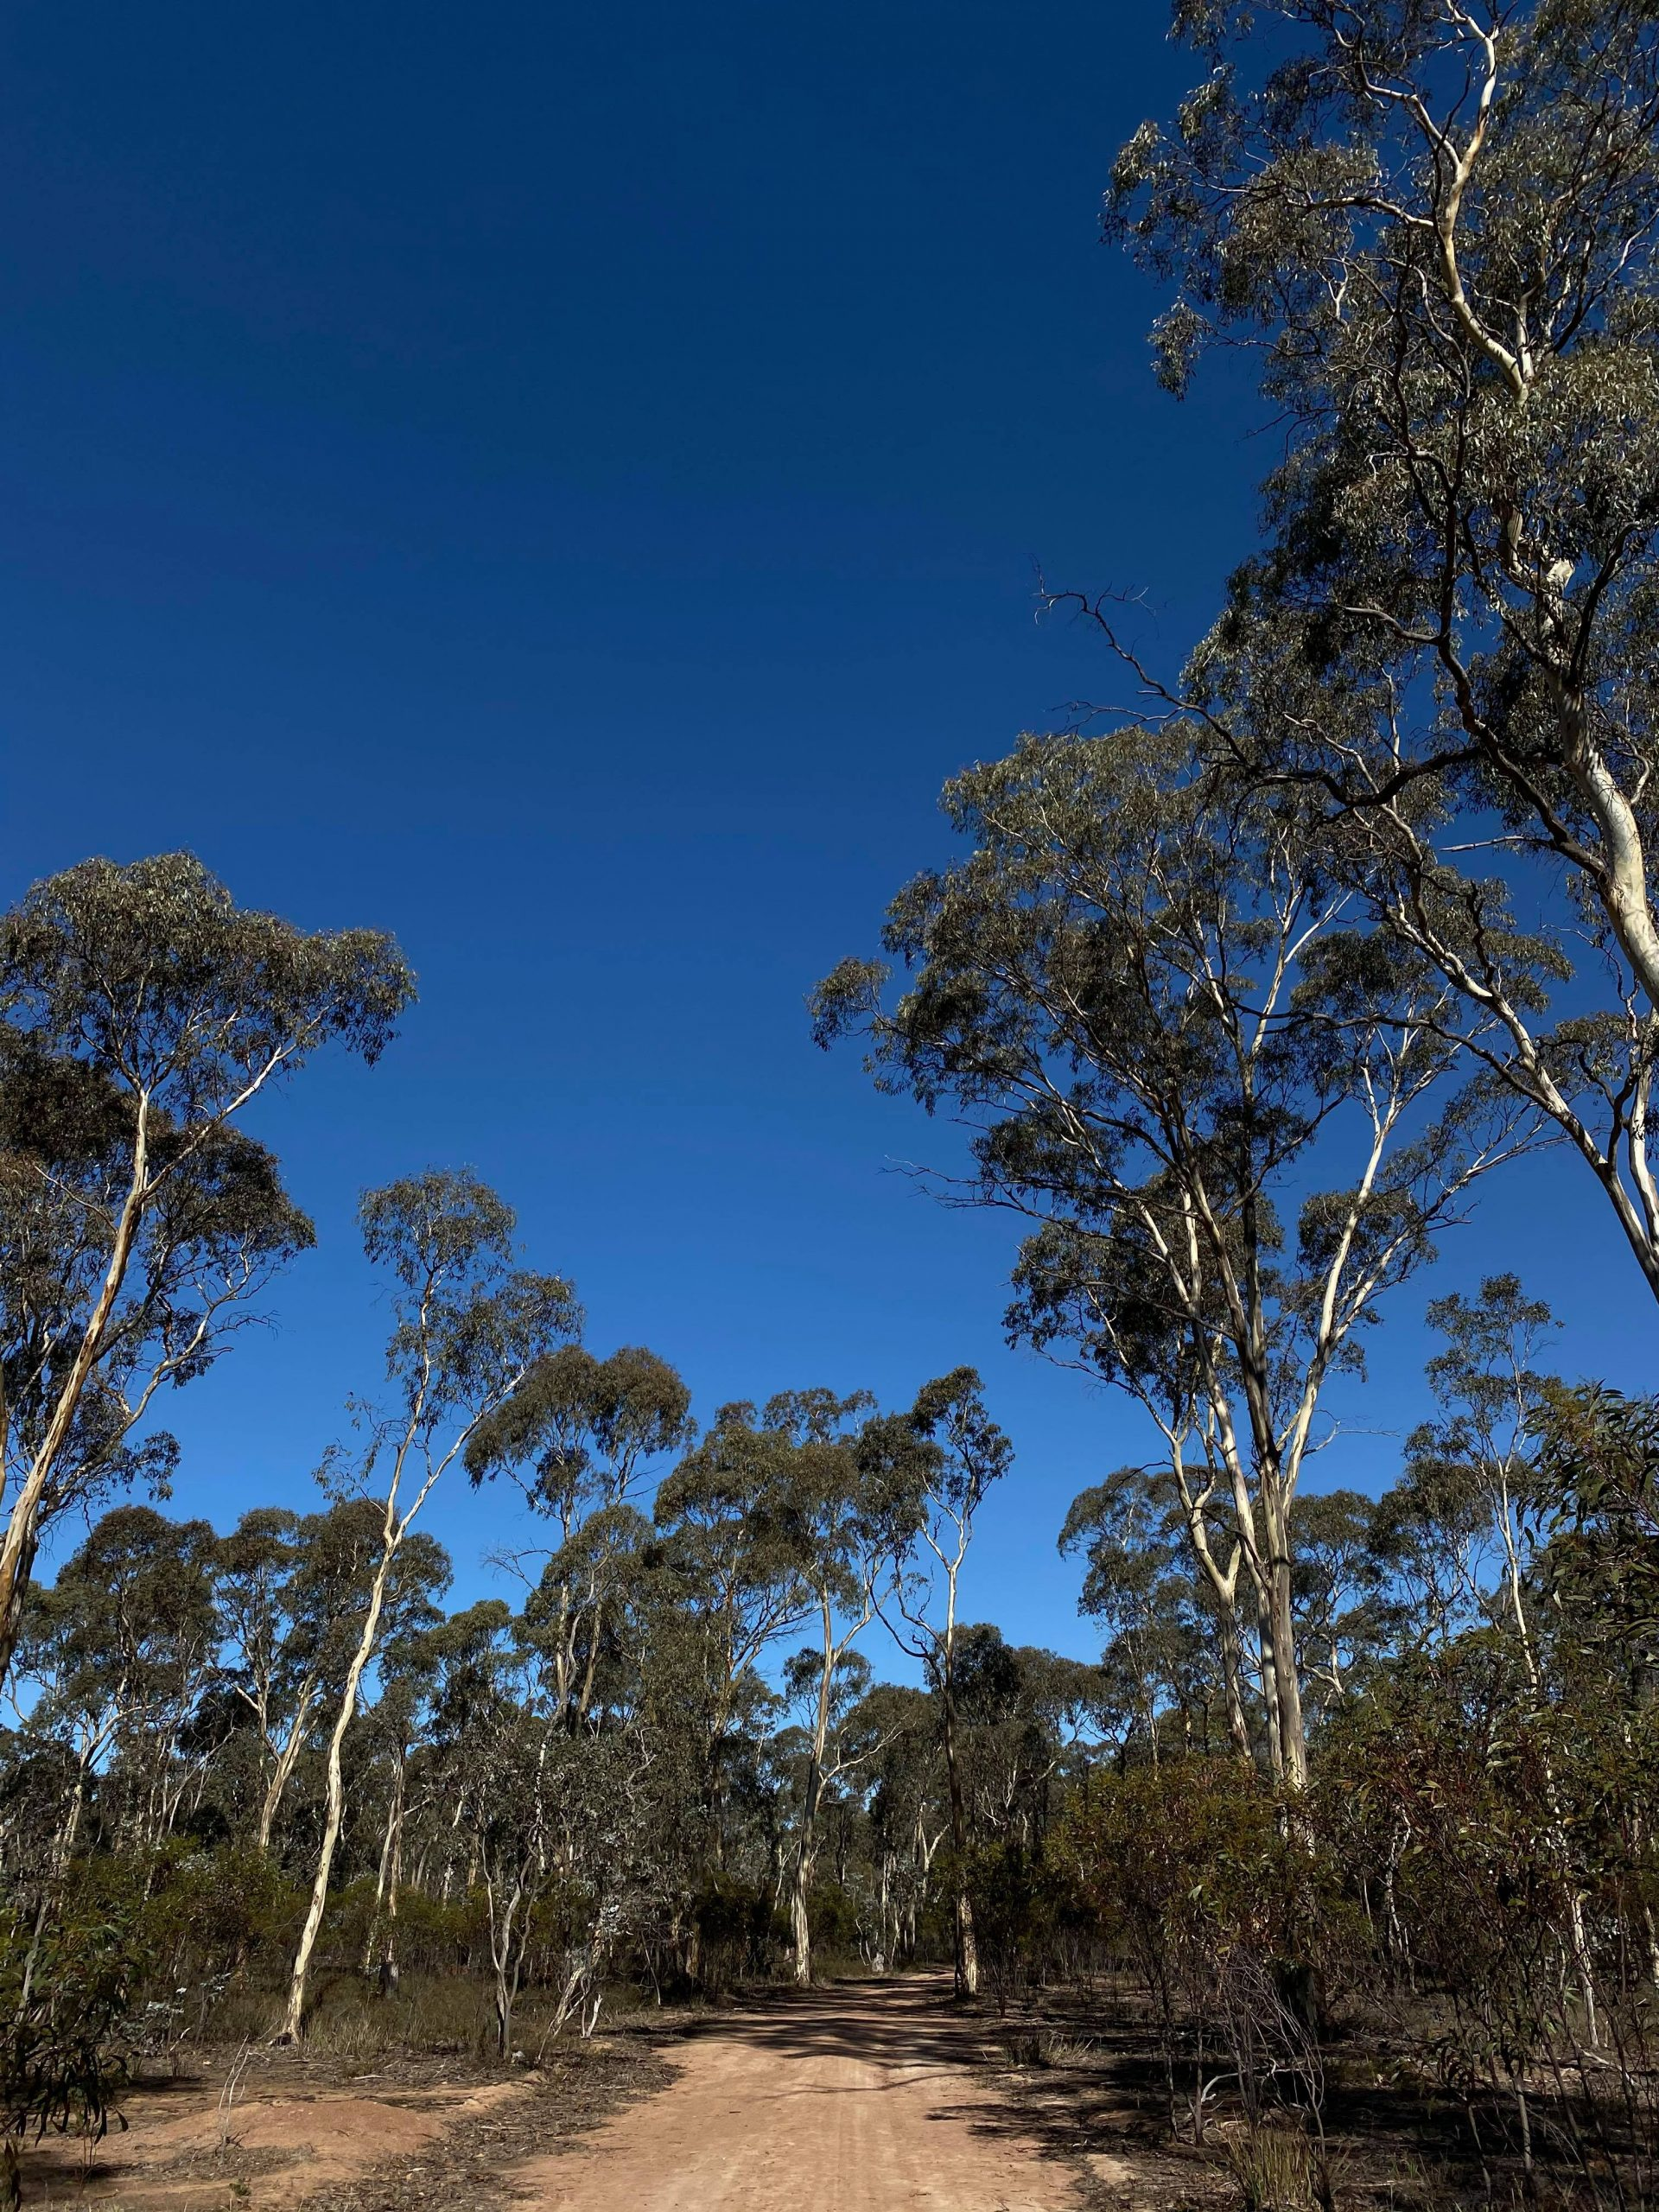 Julia takes a walk in bushland during isolation. Trees on side of road.